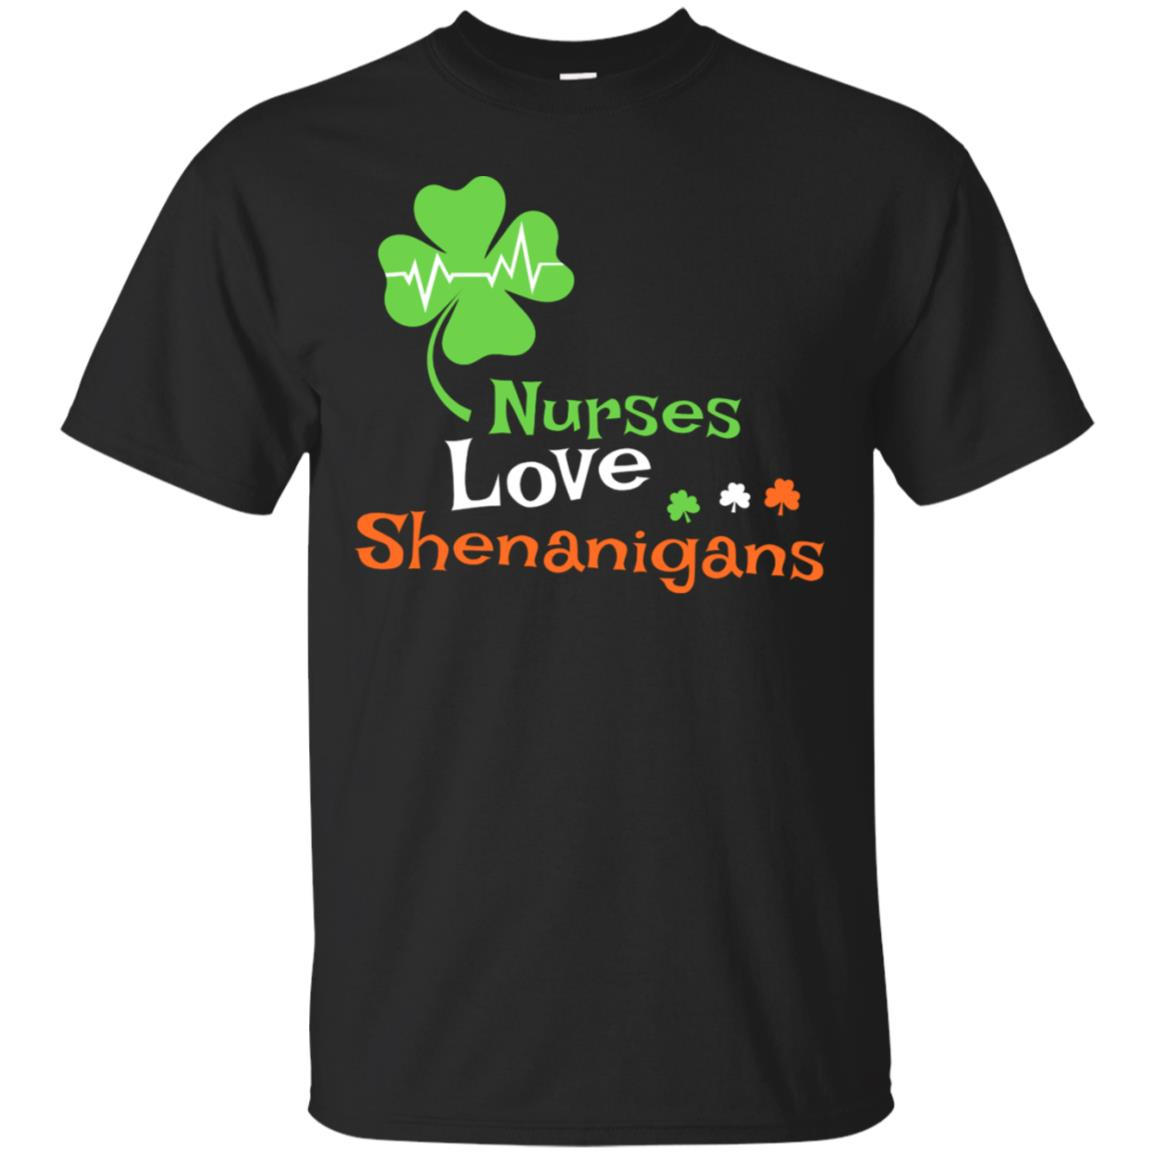 Nurses Love Shenanigans Funny St Patrick Day Men Women Shirt 99promocode